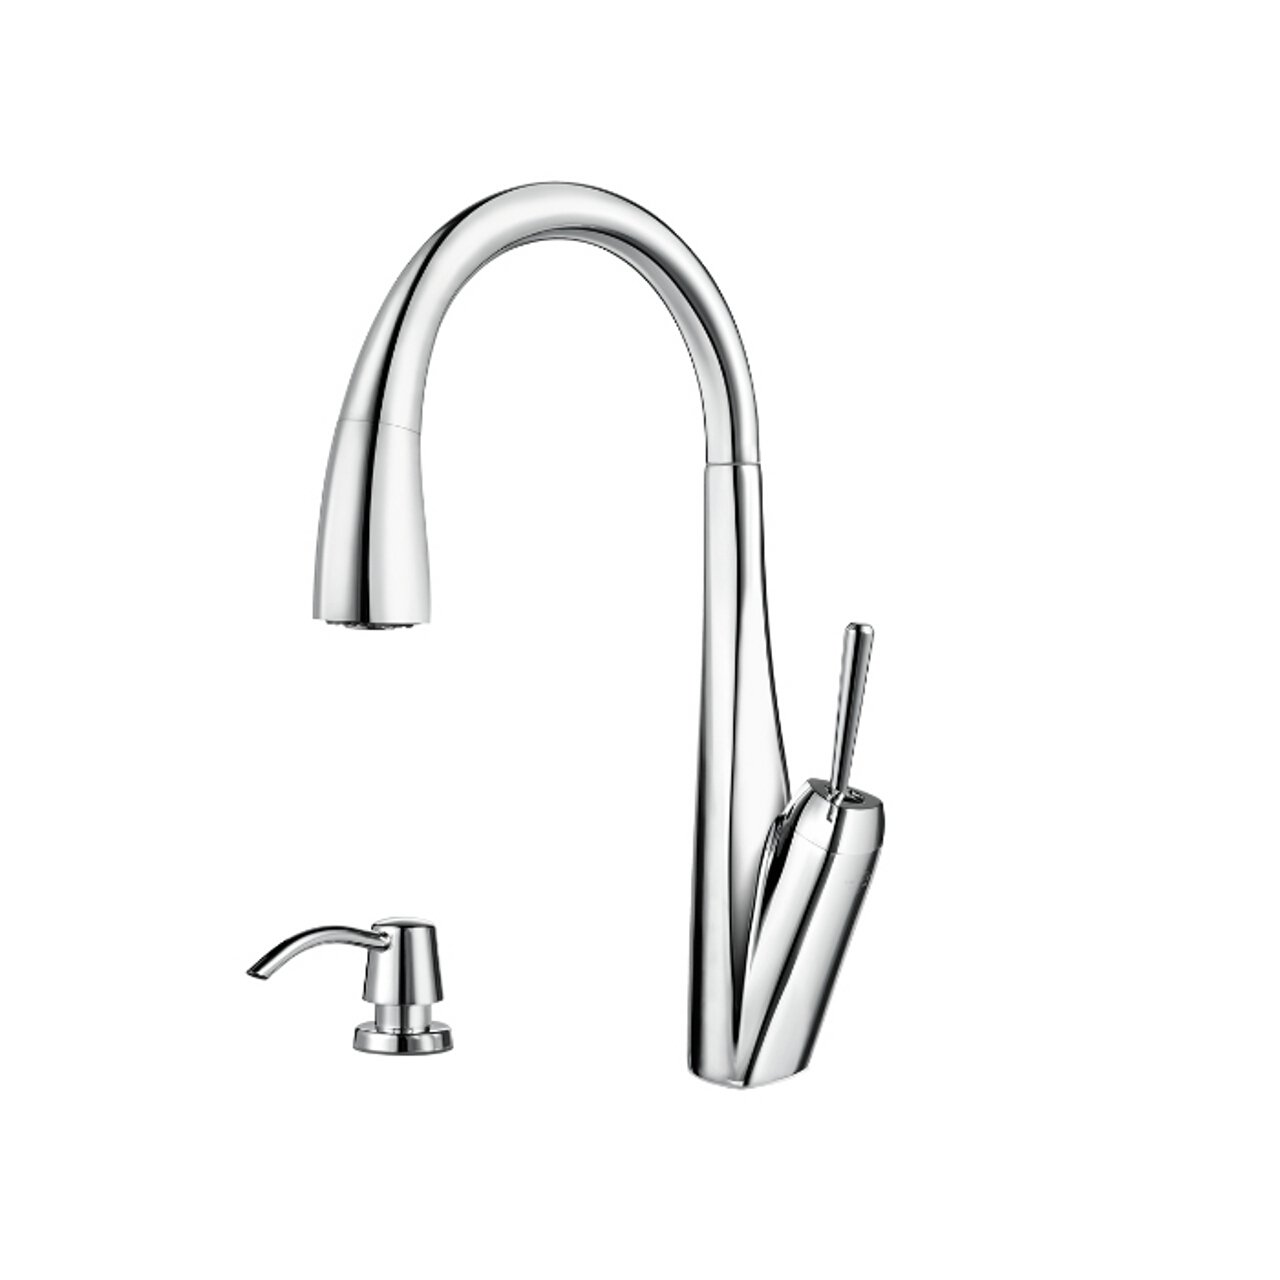 Pfister GT529-MPC Zuri Single Handle Pull-Down Kitchen Faucet and Soap Dispenser, Polished Chrome